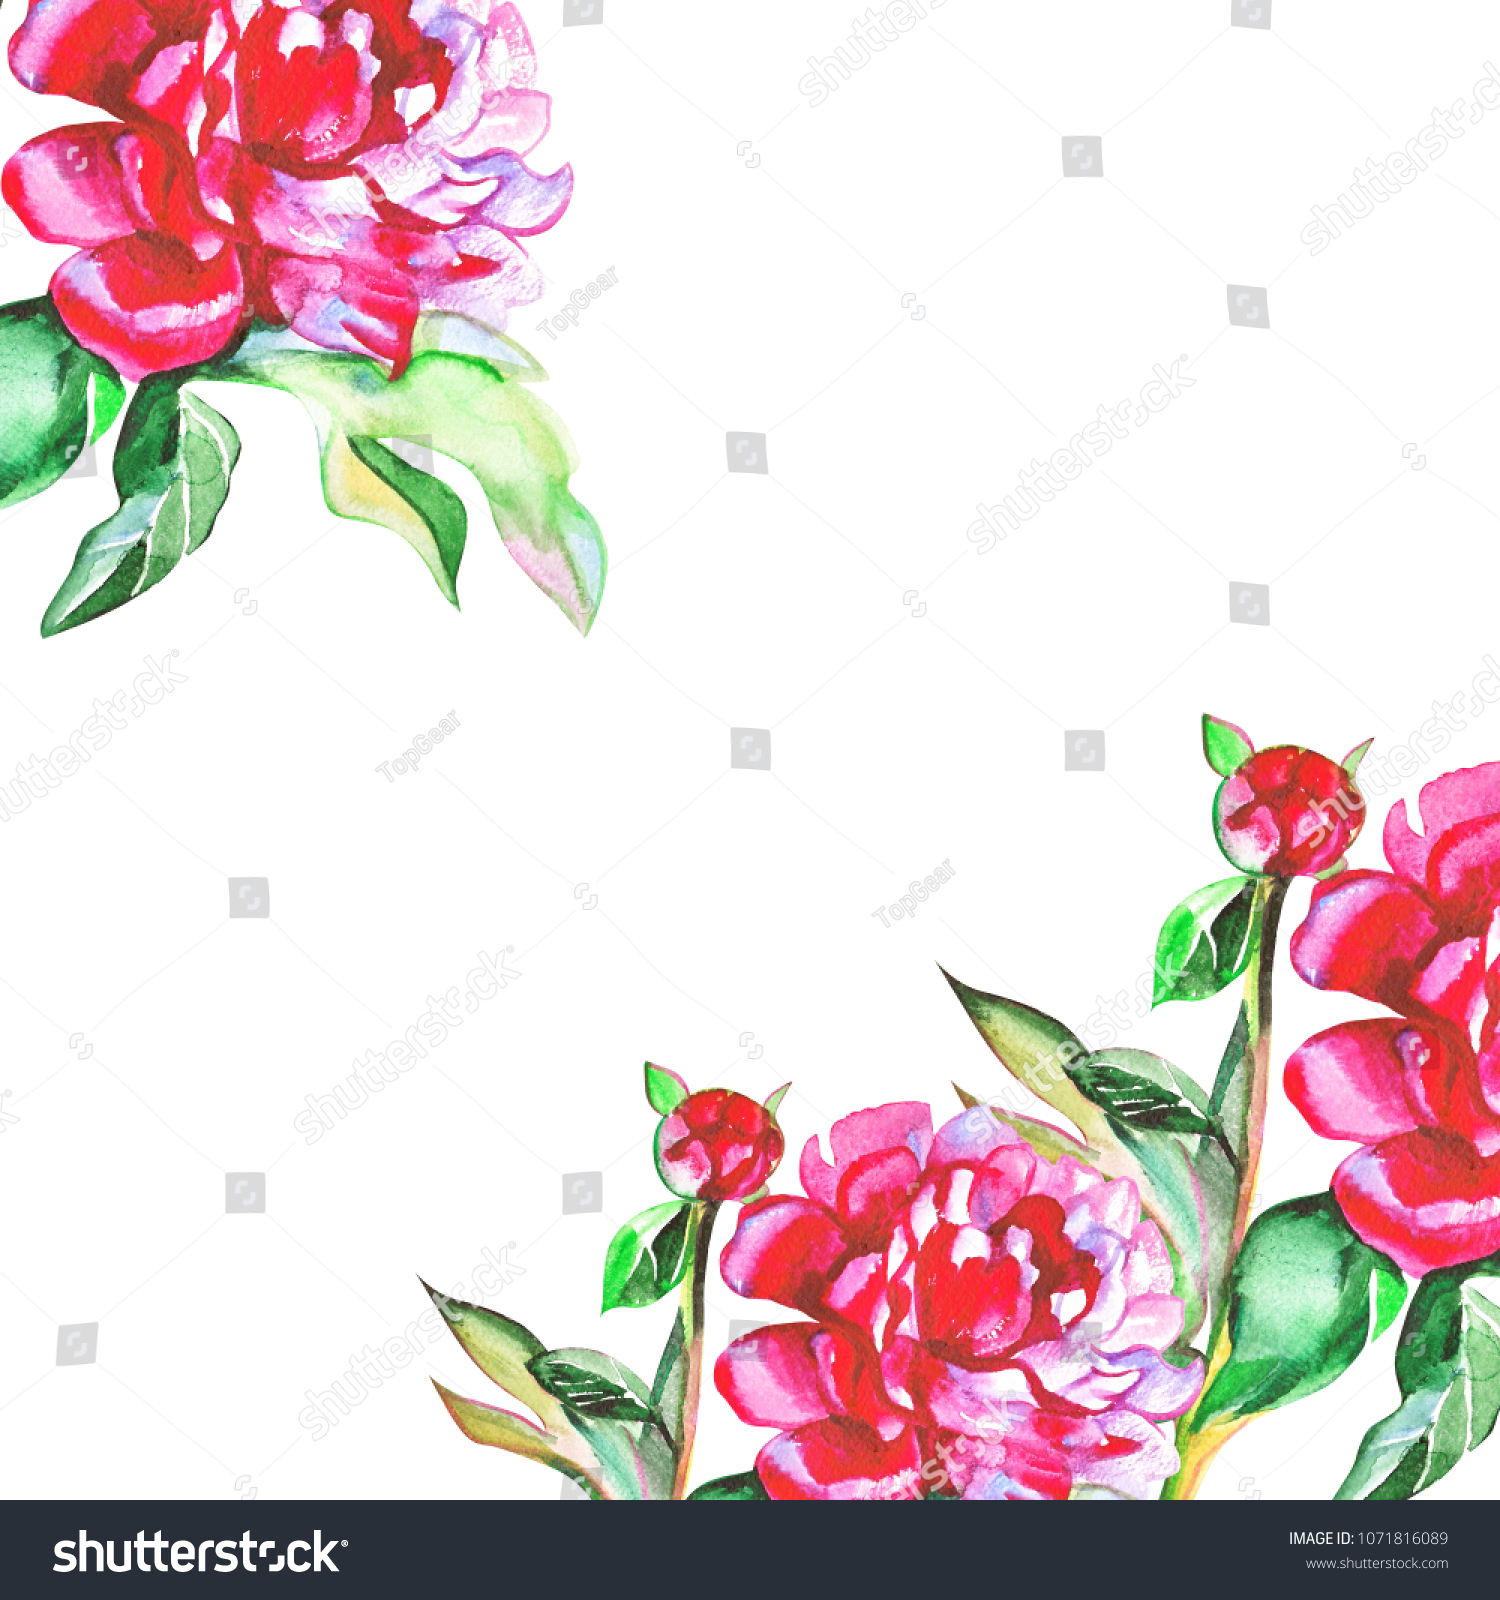 Royalty Free Stock Illustration Of Flower Red Pink Peonies Flowers